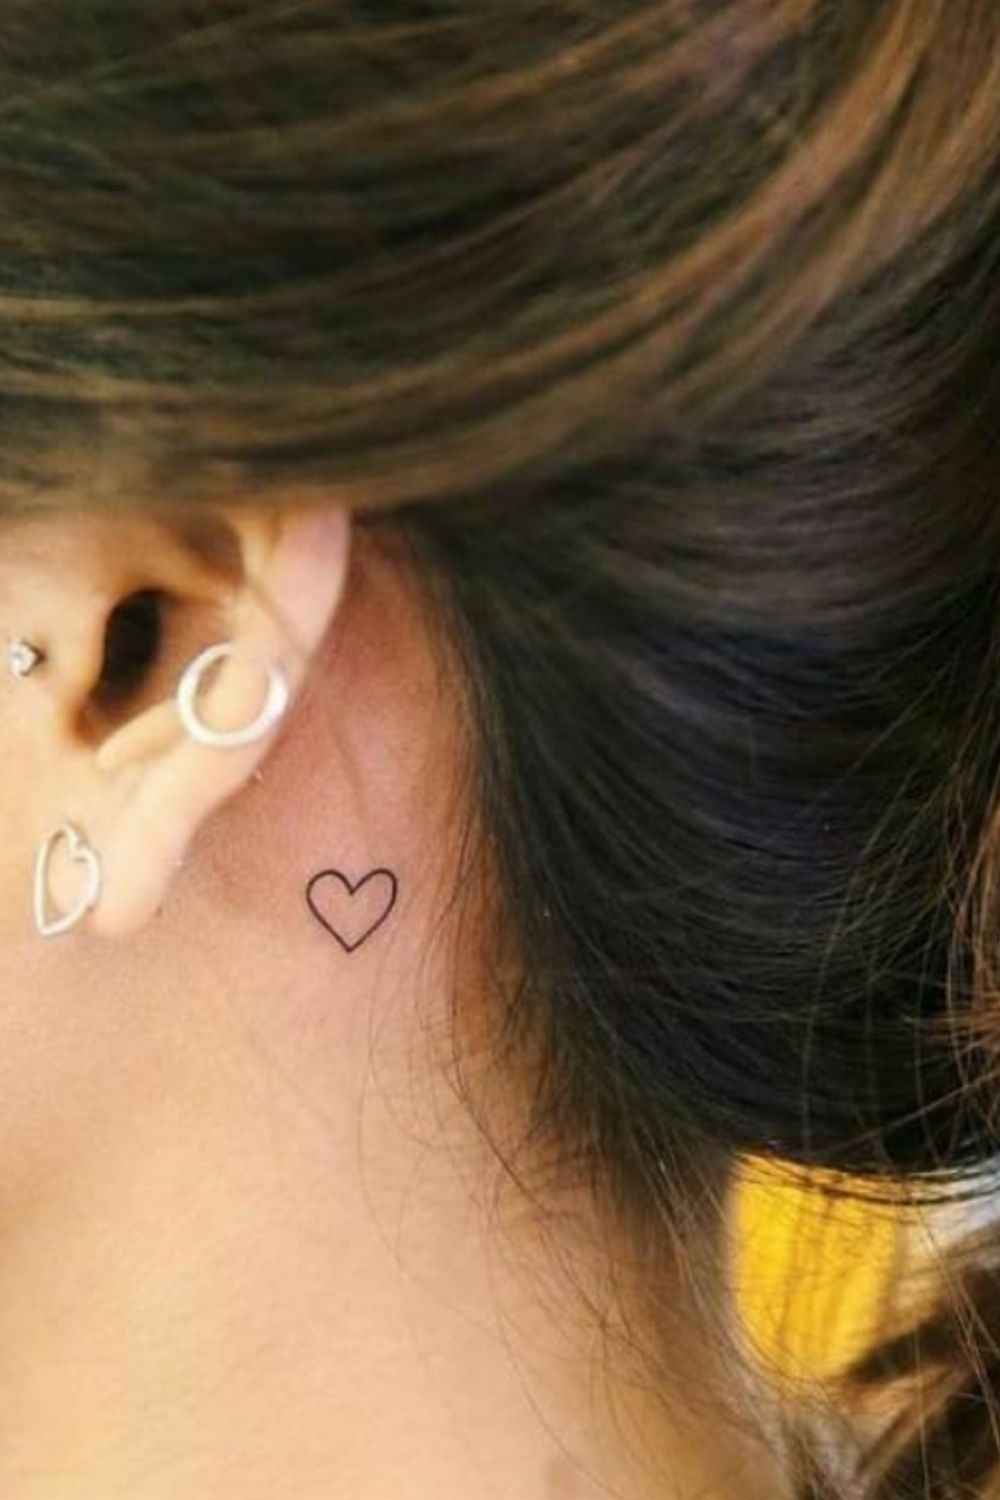 Behind Ear Tattoo: 40 Tiny Tattoo Designs For Girls To Try!